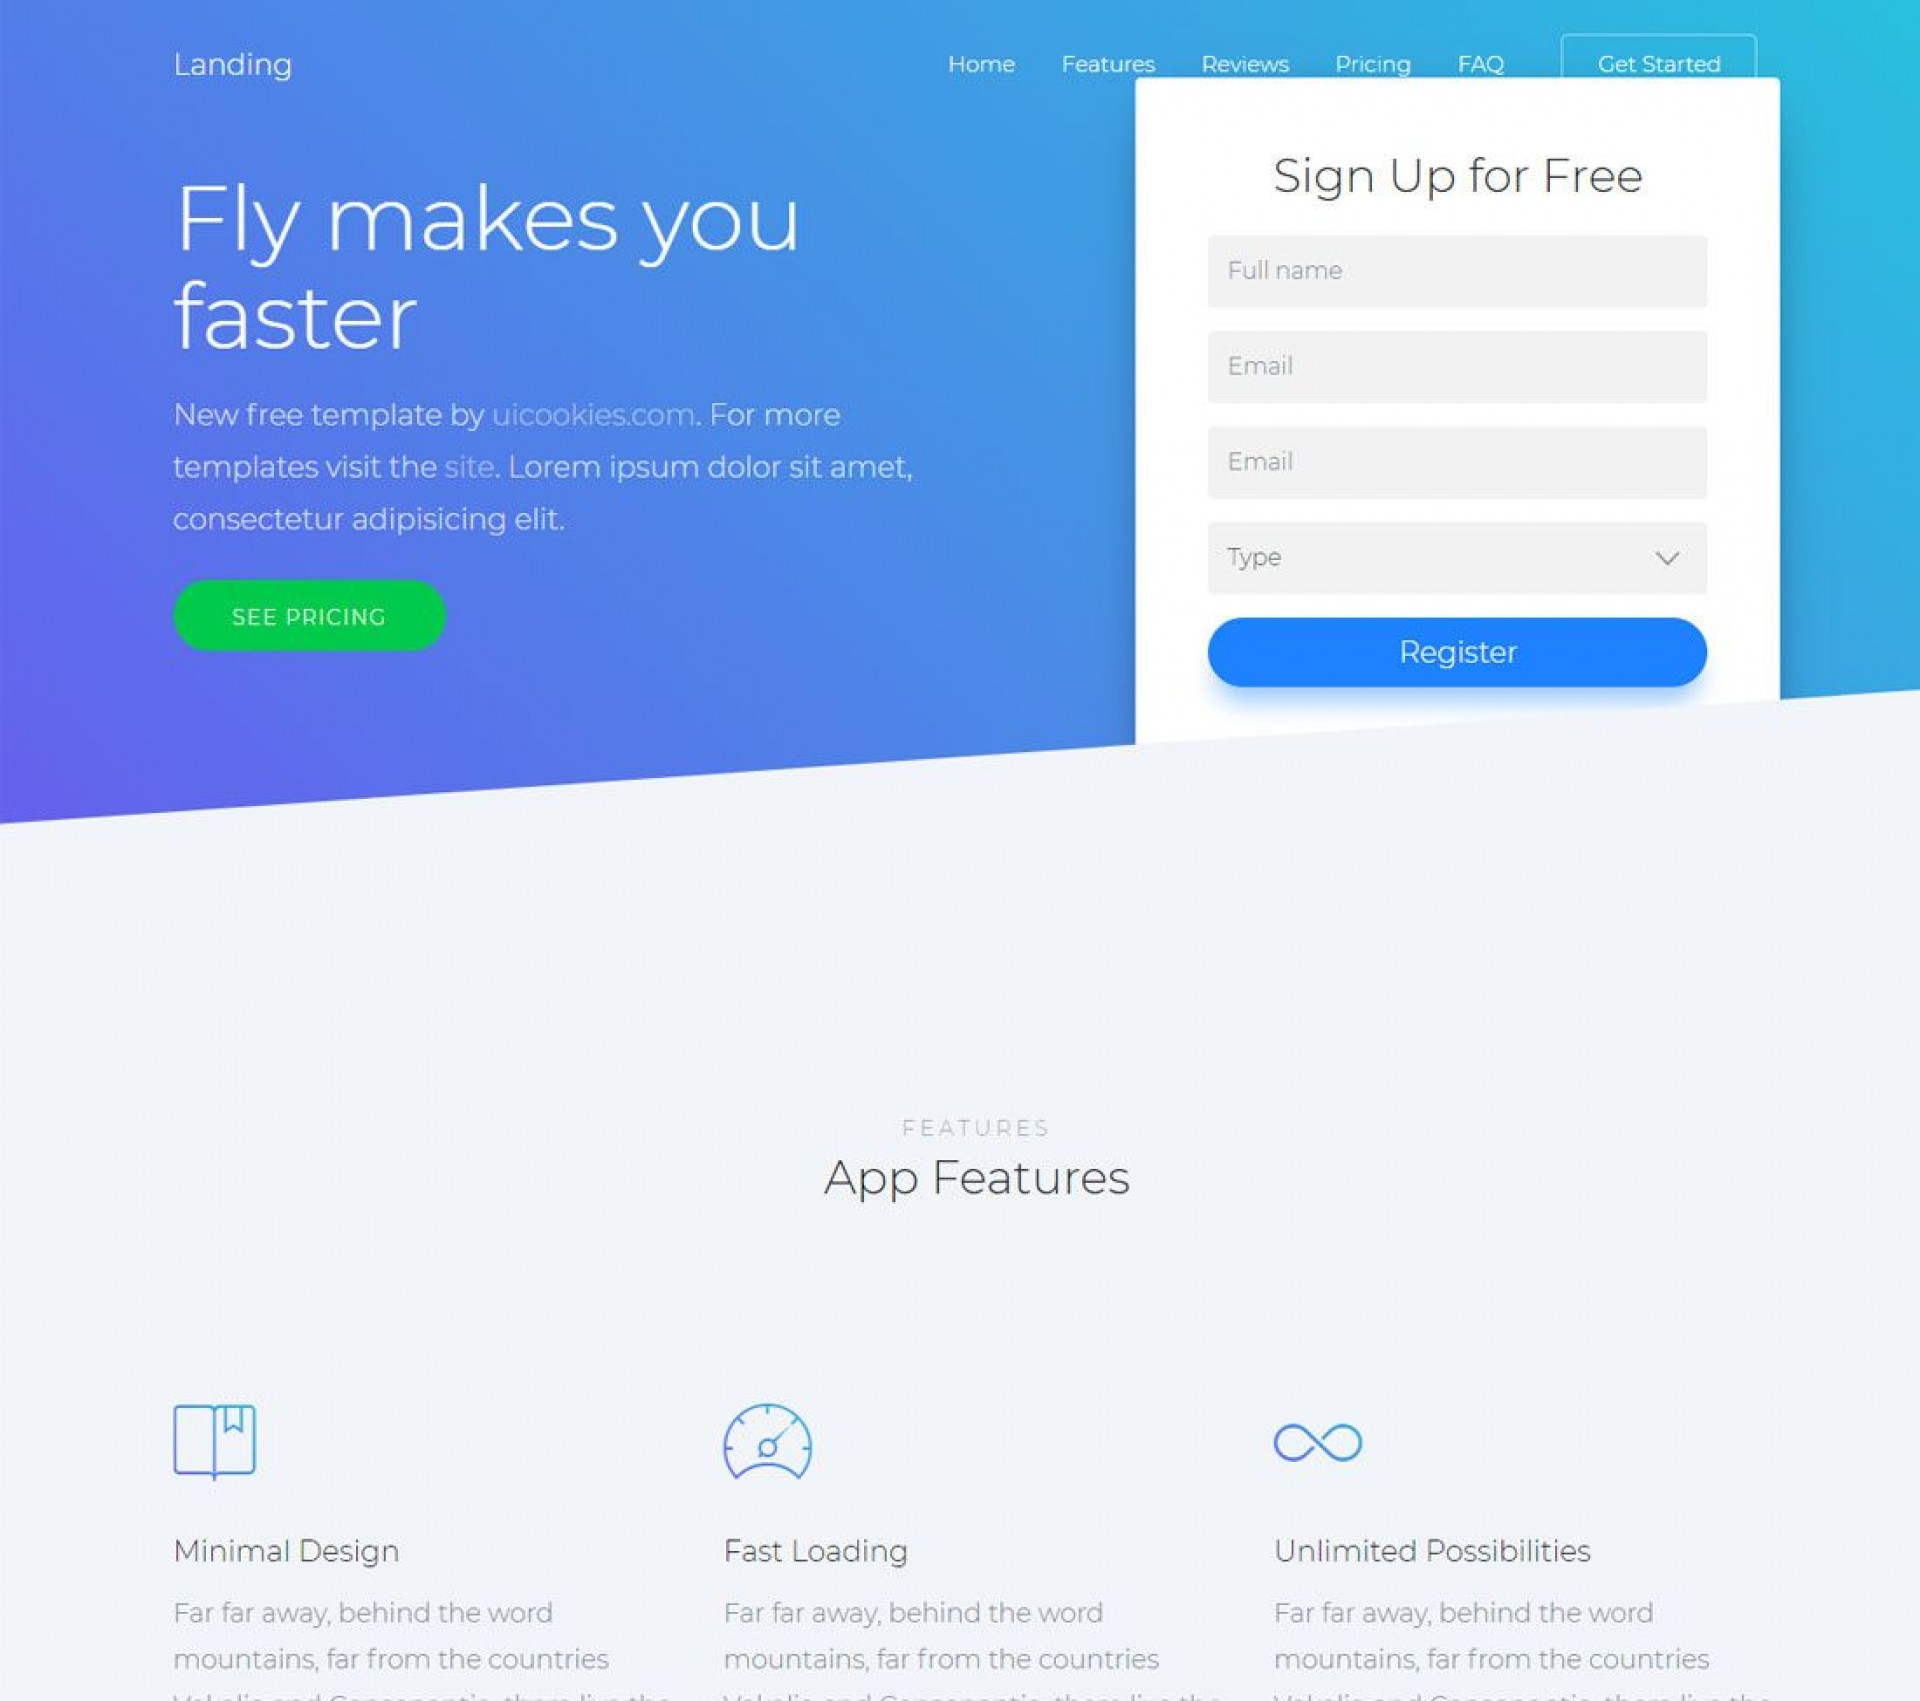 006 Incredible Html Landing Page Template Free Concept  Responsive Download Simple Best1920